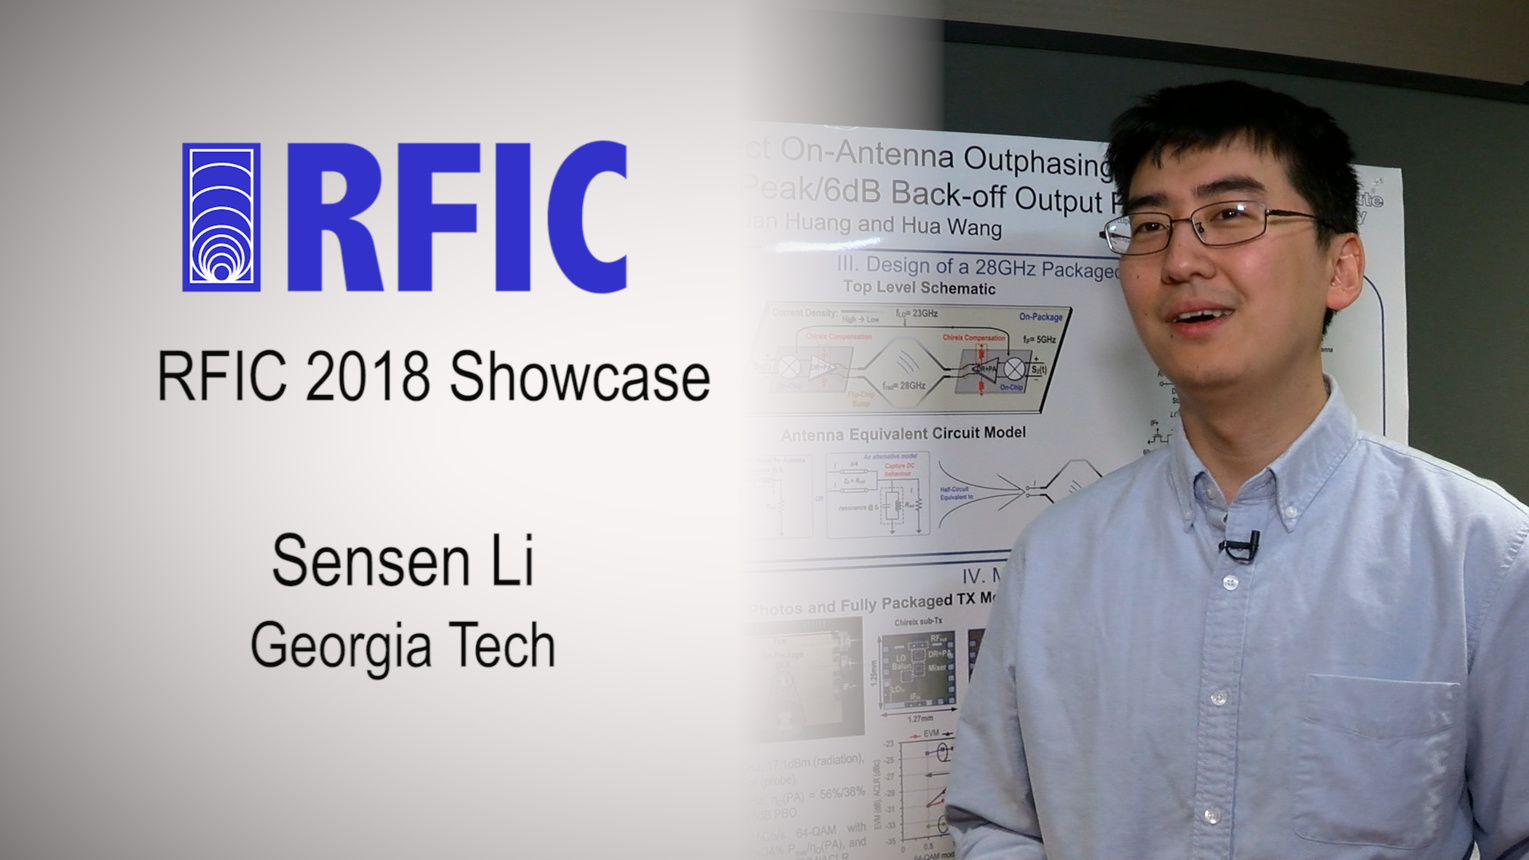 28GHz Packaged Chireix Transmitter - Sensen Li - RFIC Showcase 2018